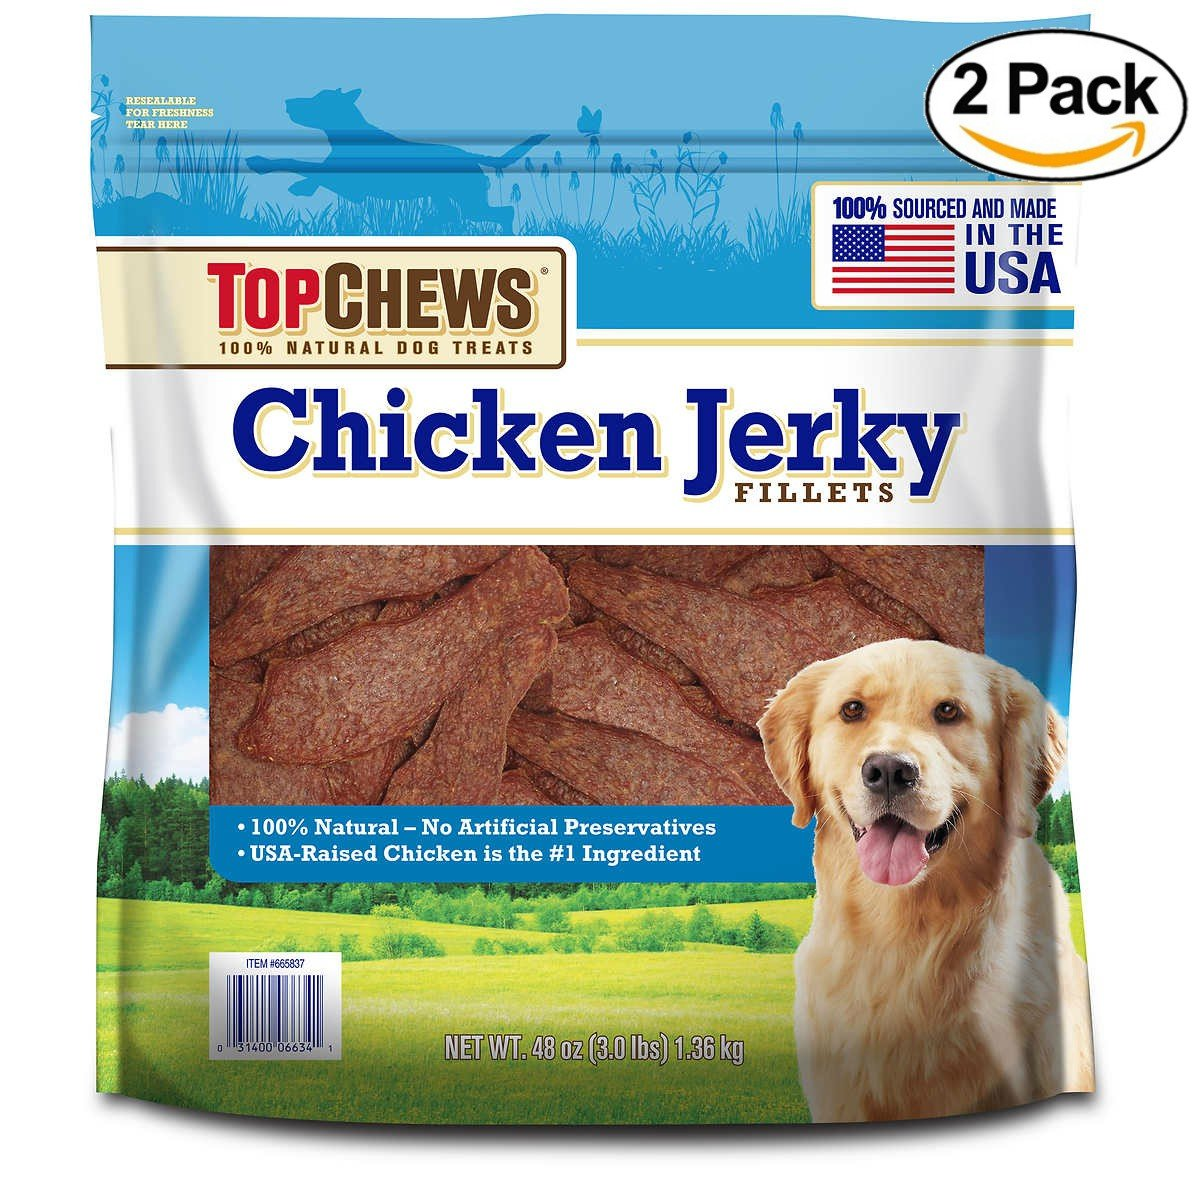 Top Chews Chicken Jerky Fillets 100% Natural Dog Treats, Made in the US - 2 Pck (3 lbs)